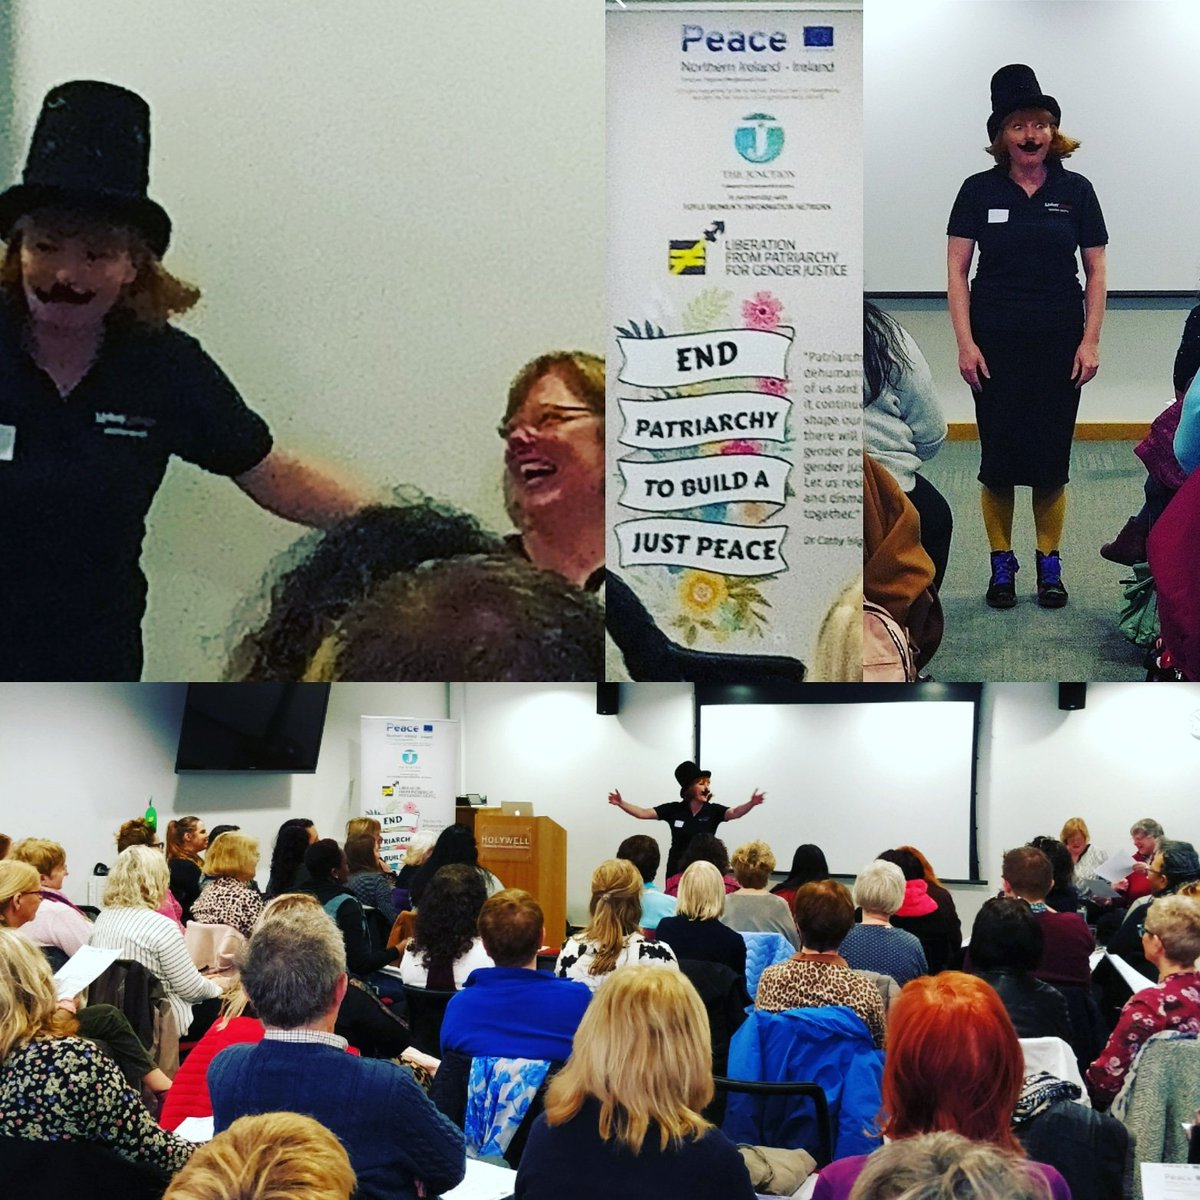 Here's Pat Riarchy turning up to keep people in their place at the 'Patriarchy Here and There: Transforming a Global System' conference. Brilliant event. Fab speakers. Lively discussion. #SmashThePatriarchy #funnywomen #theOtherDerryGirls #educational #Feminism